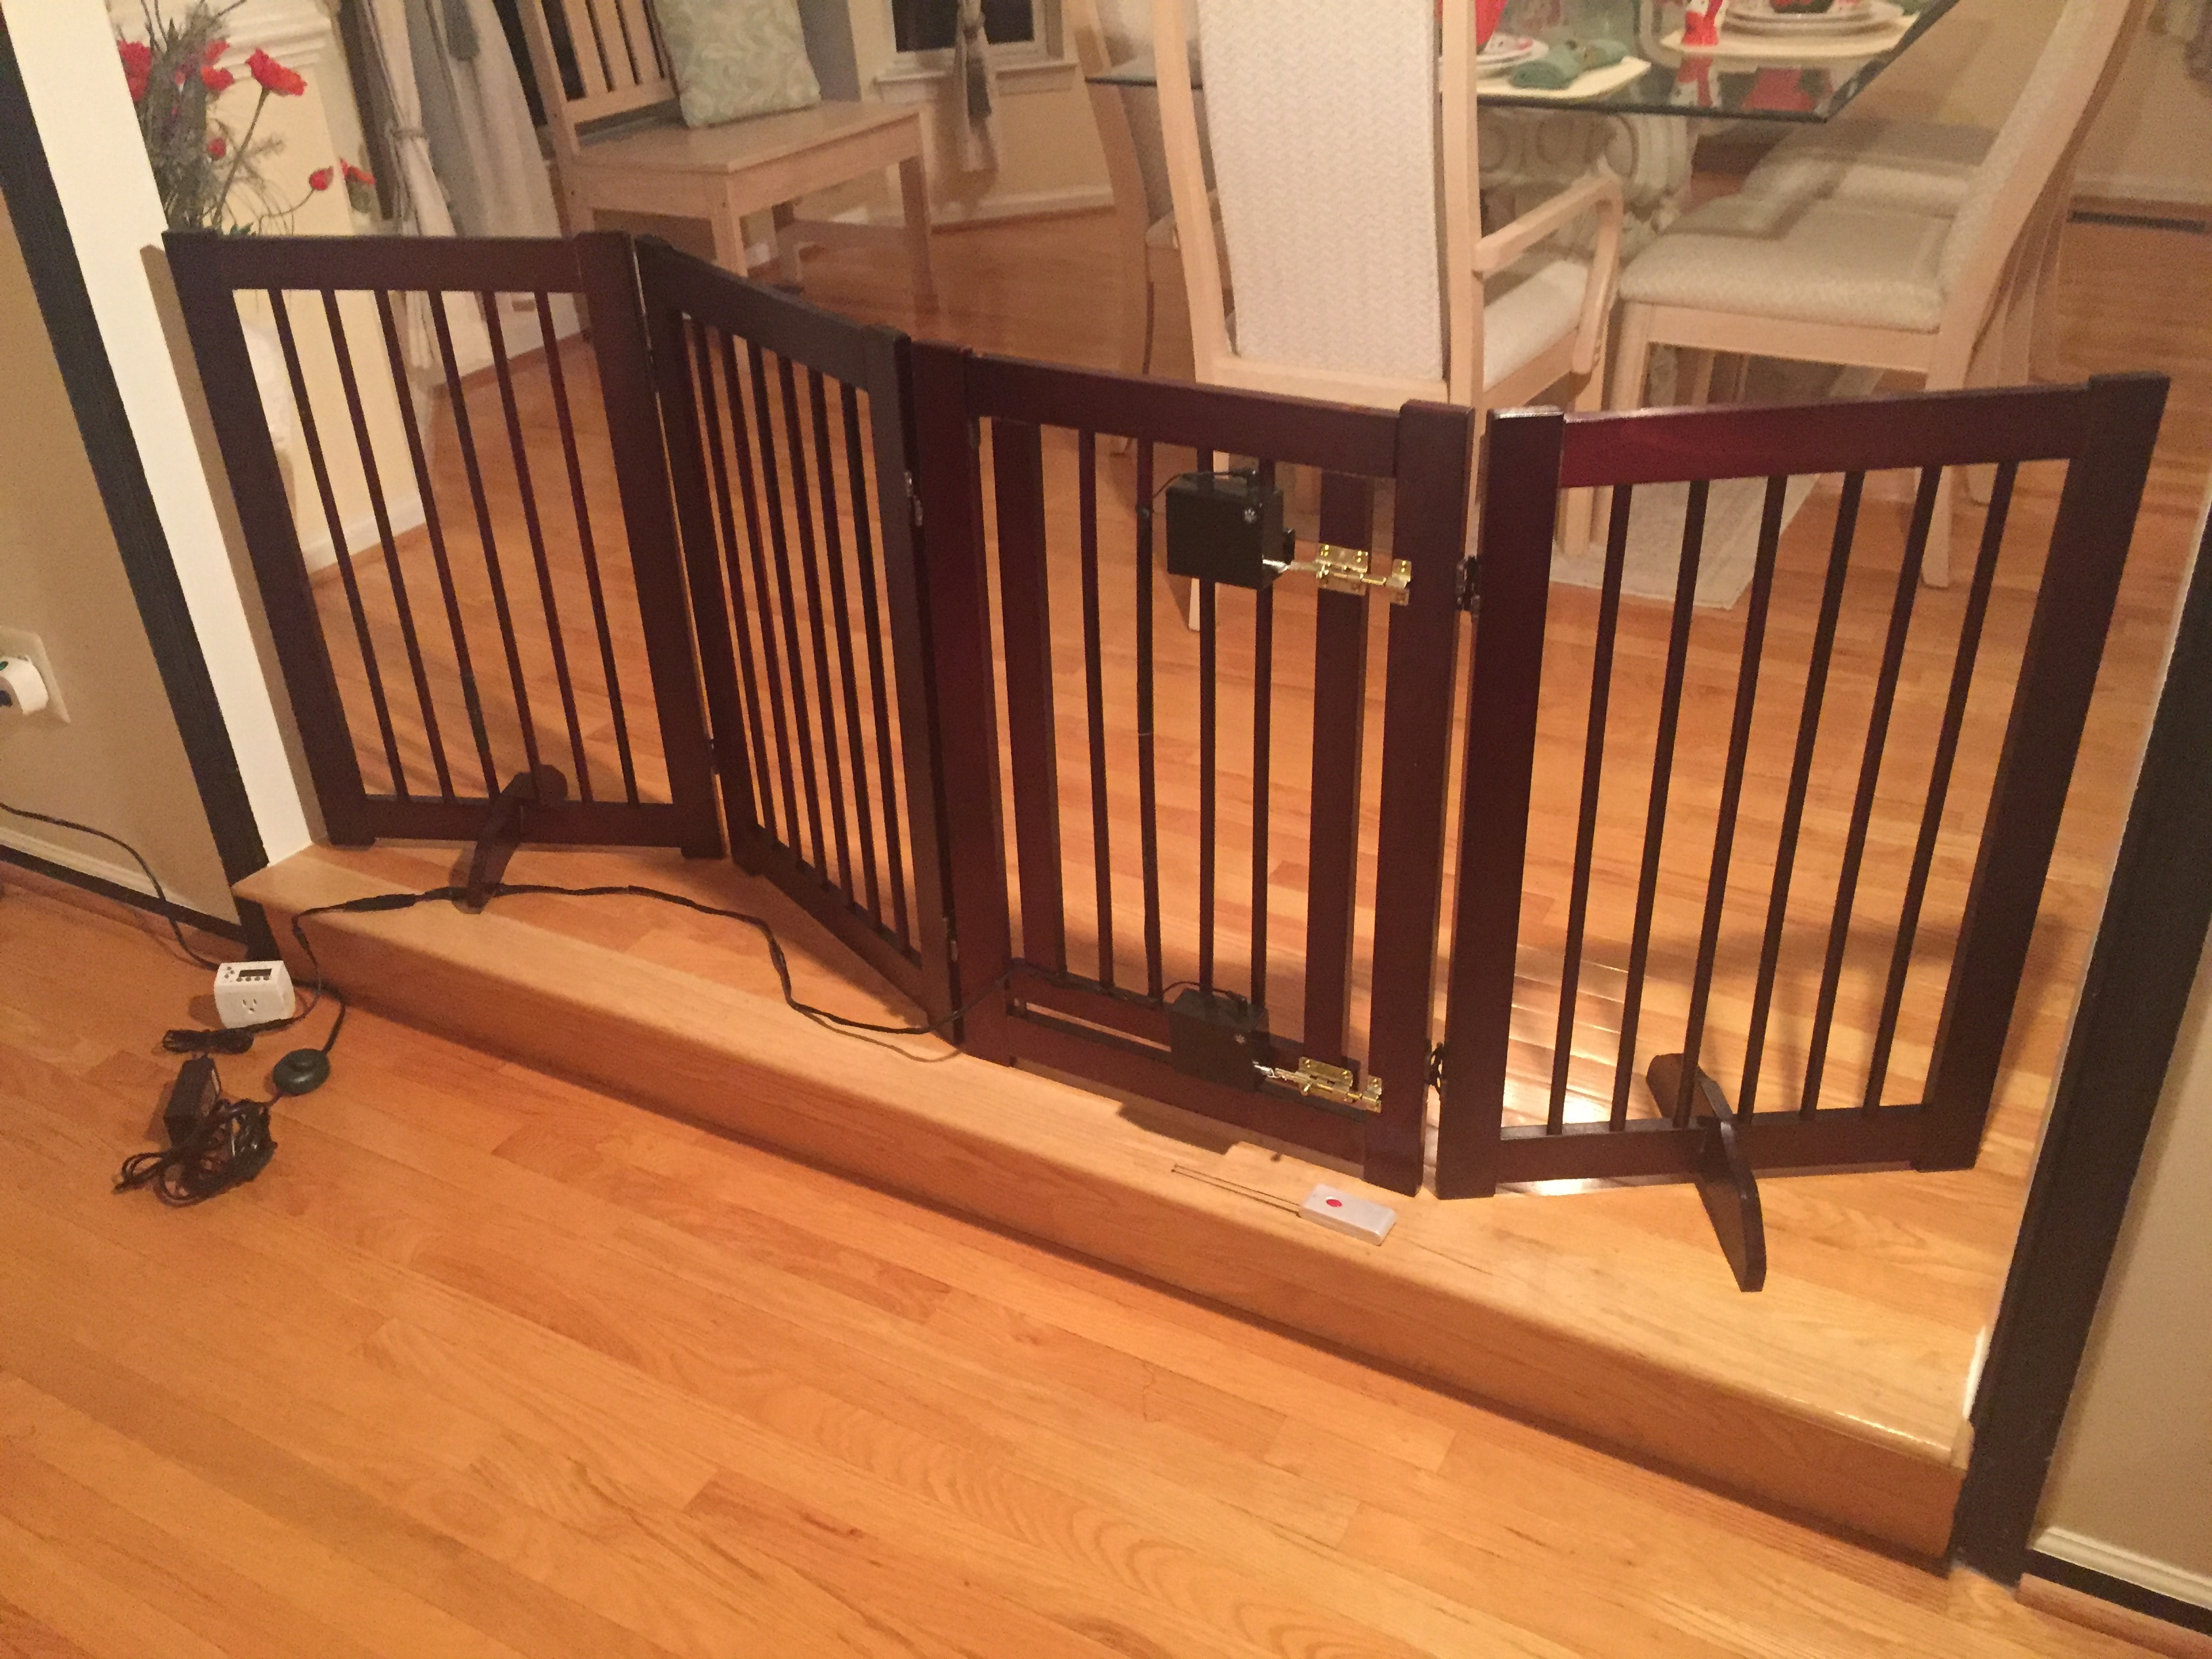 Easy Out Deluxe on Pet Barrier